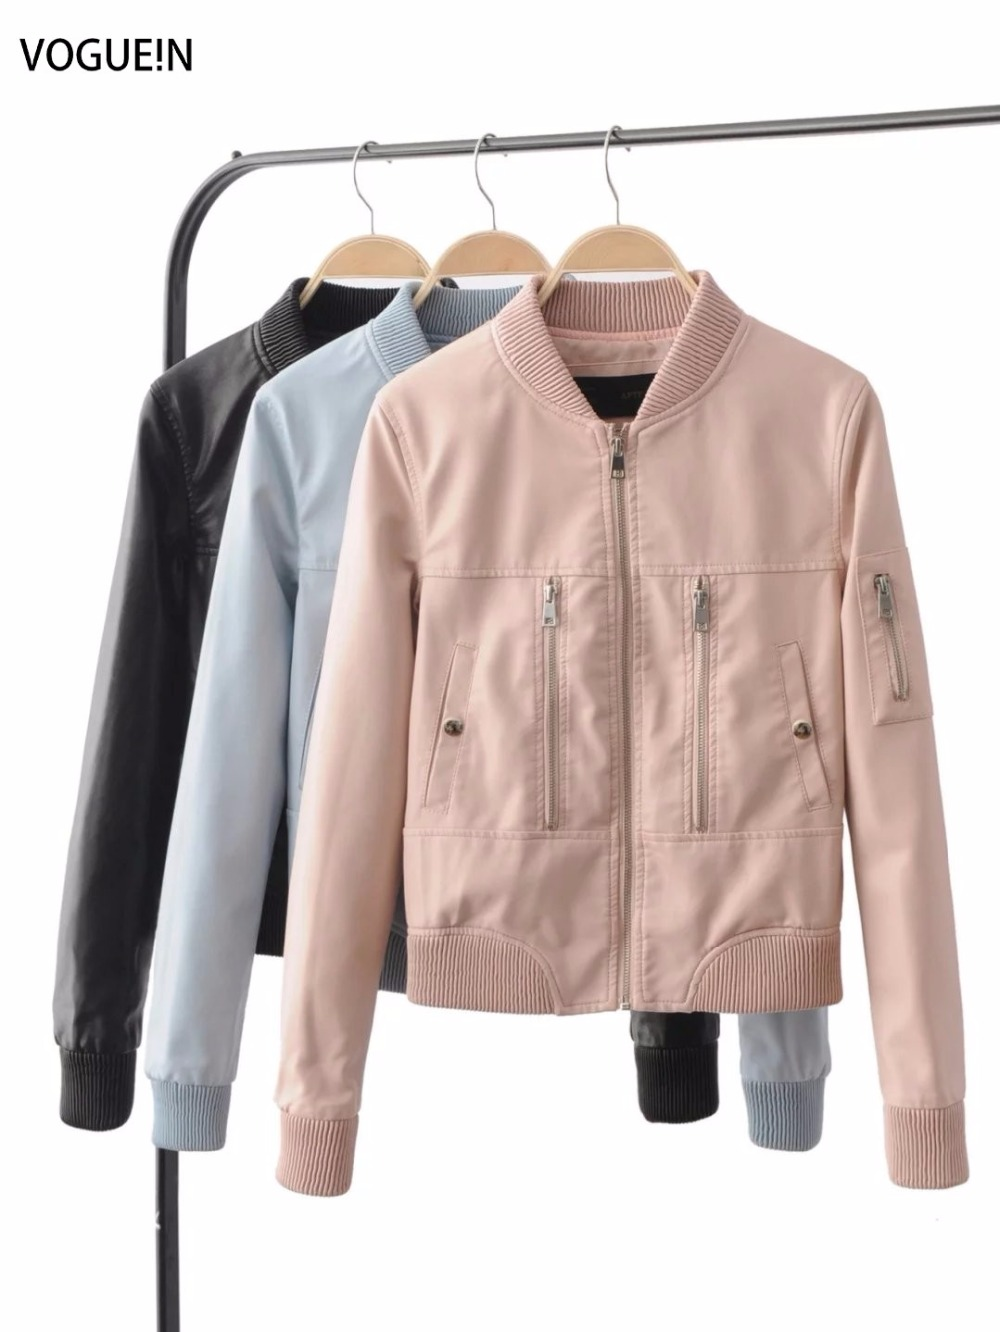 VOGUE!N New Womens Fashion Faux Leather Slim Motorcycle Zipper Jacket Short Coat Outerwear Black/Blue/Pink 3 Colors